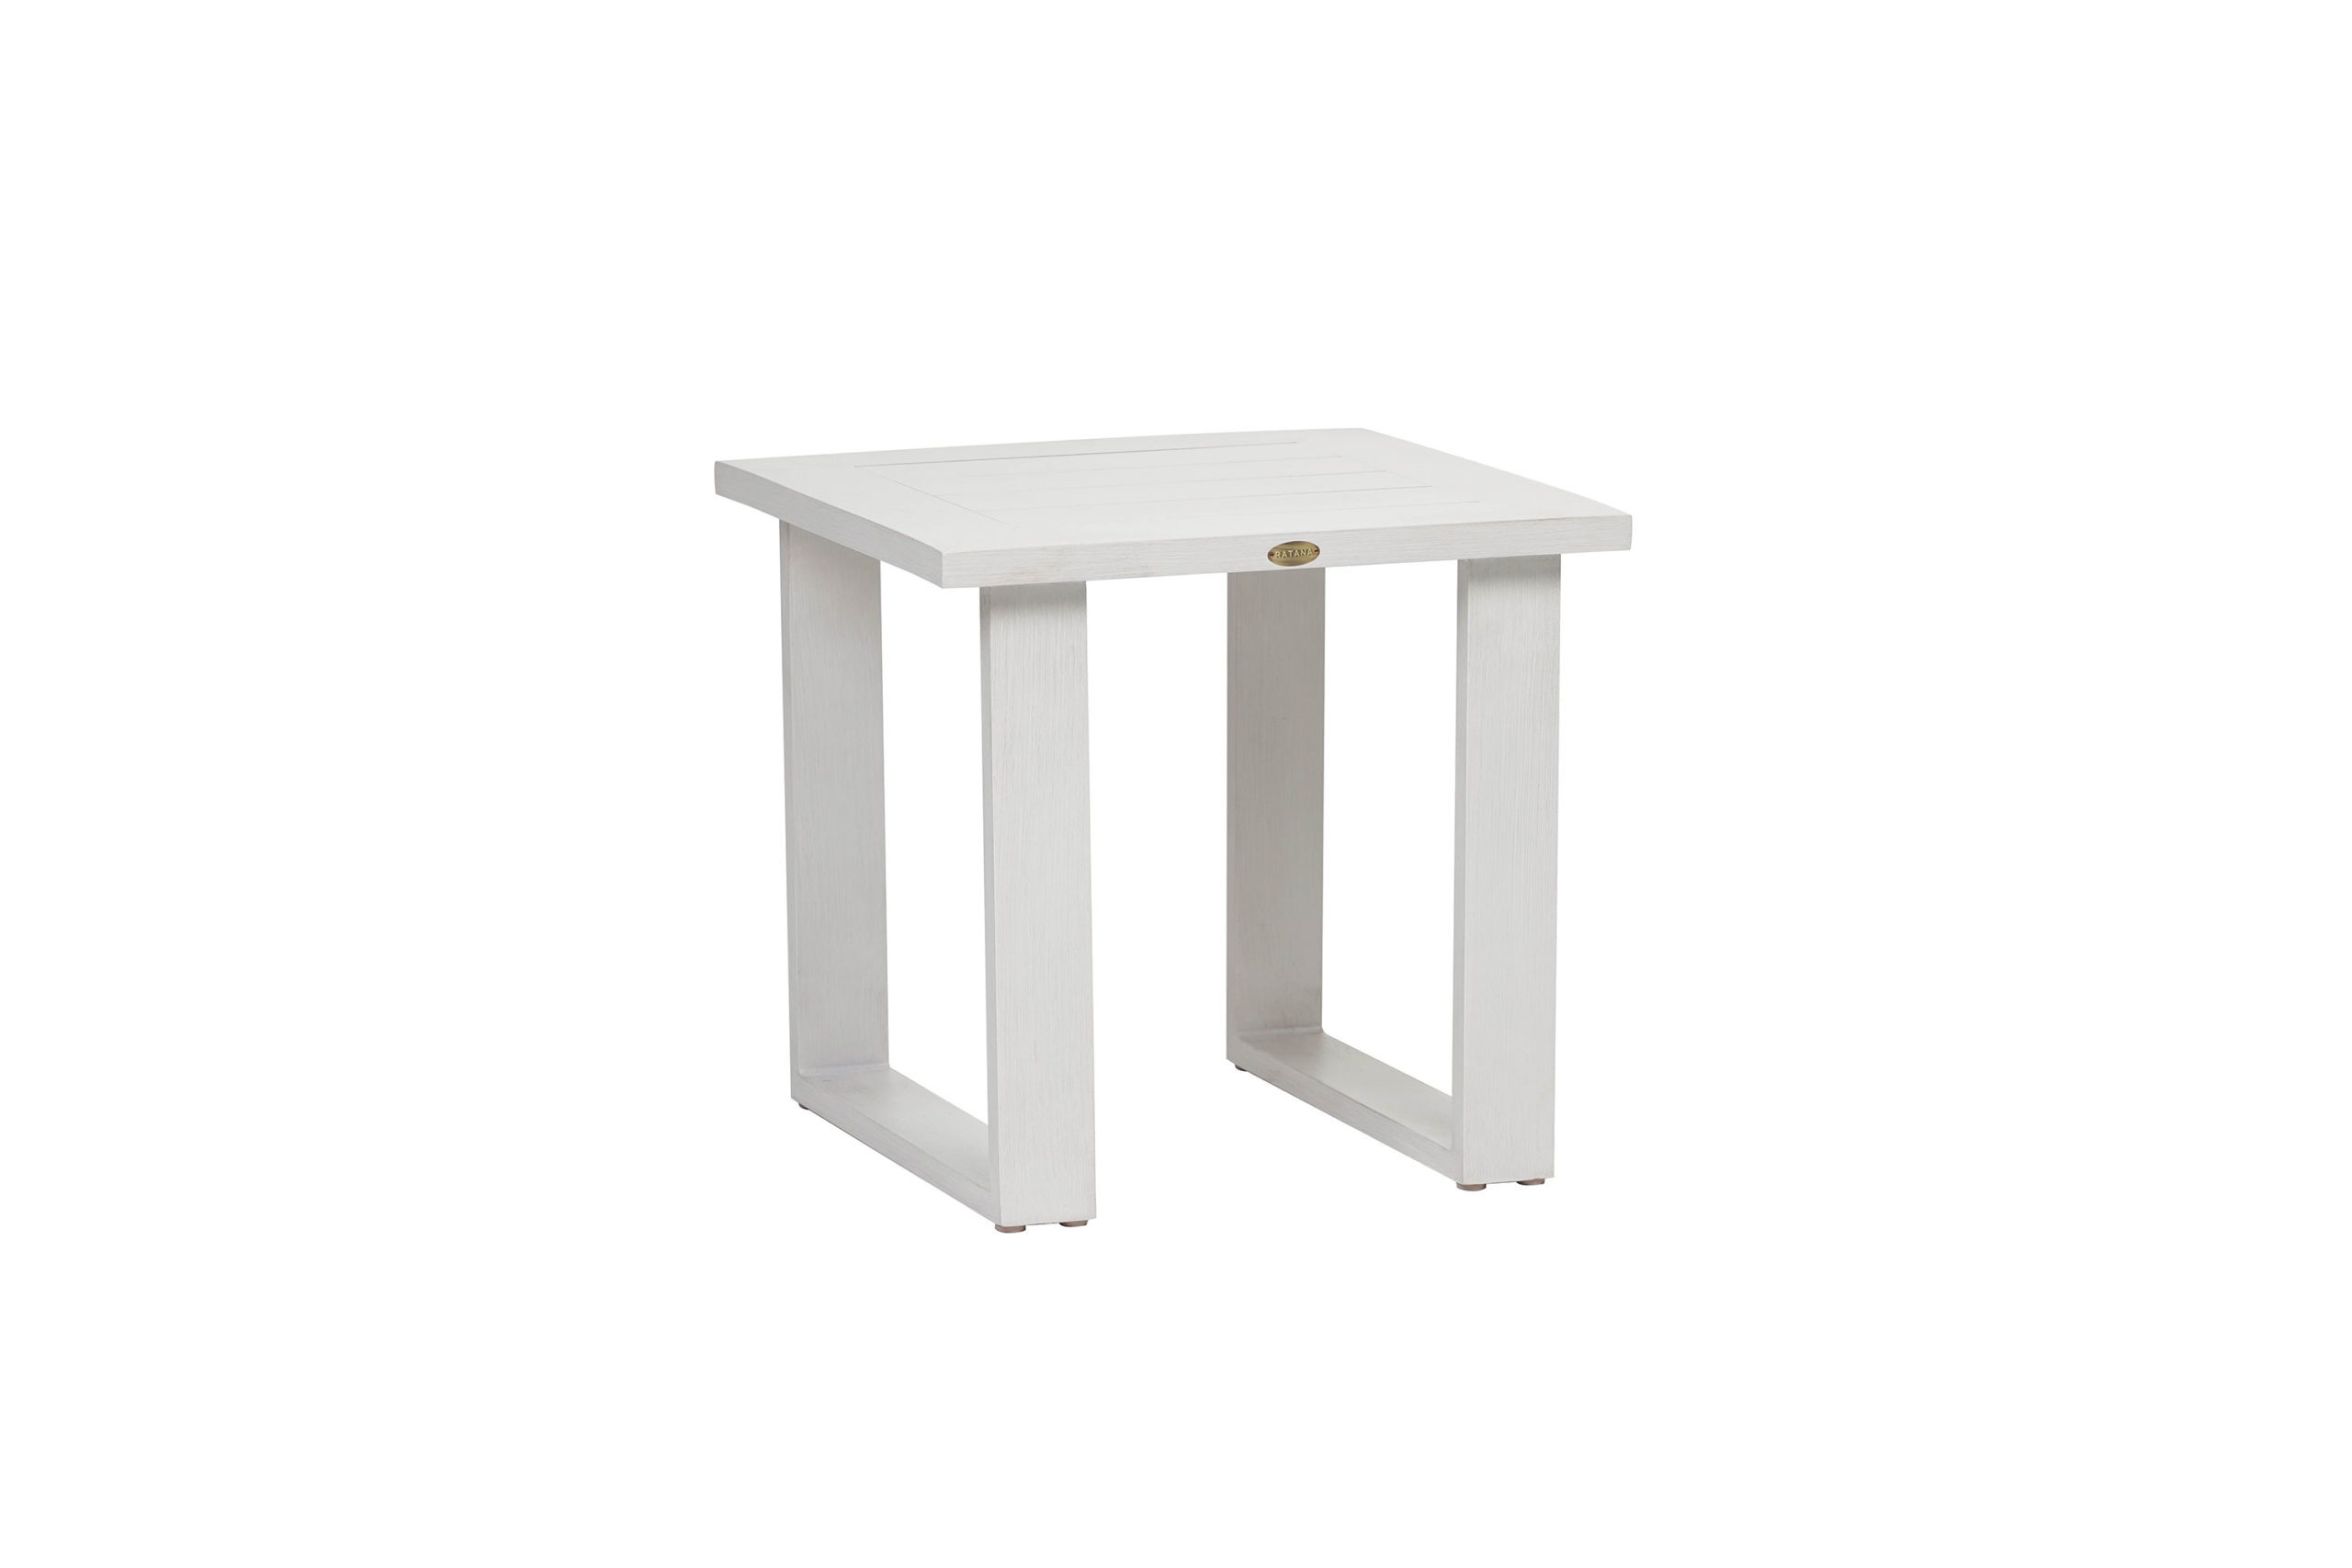 The Park Lane end table by Ratana shown in white.